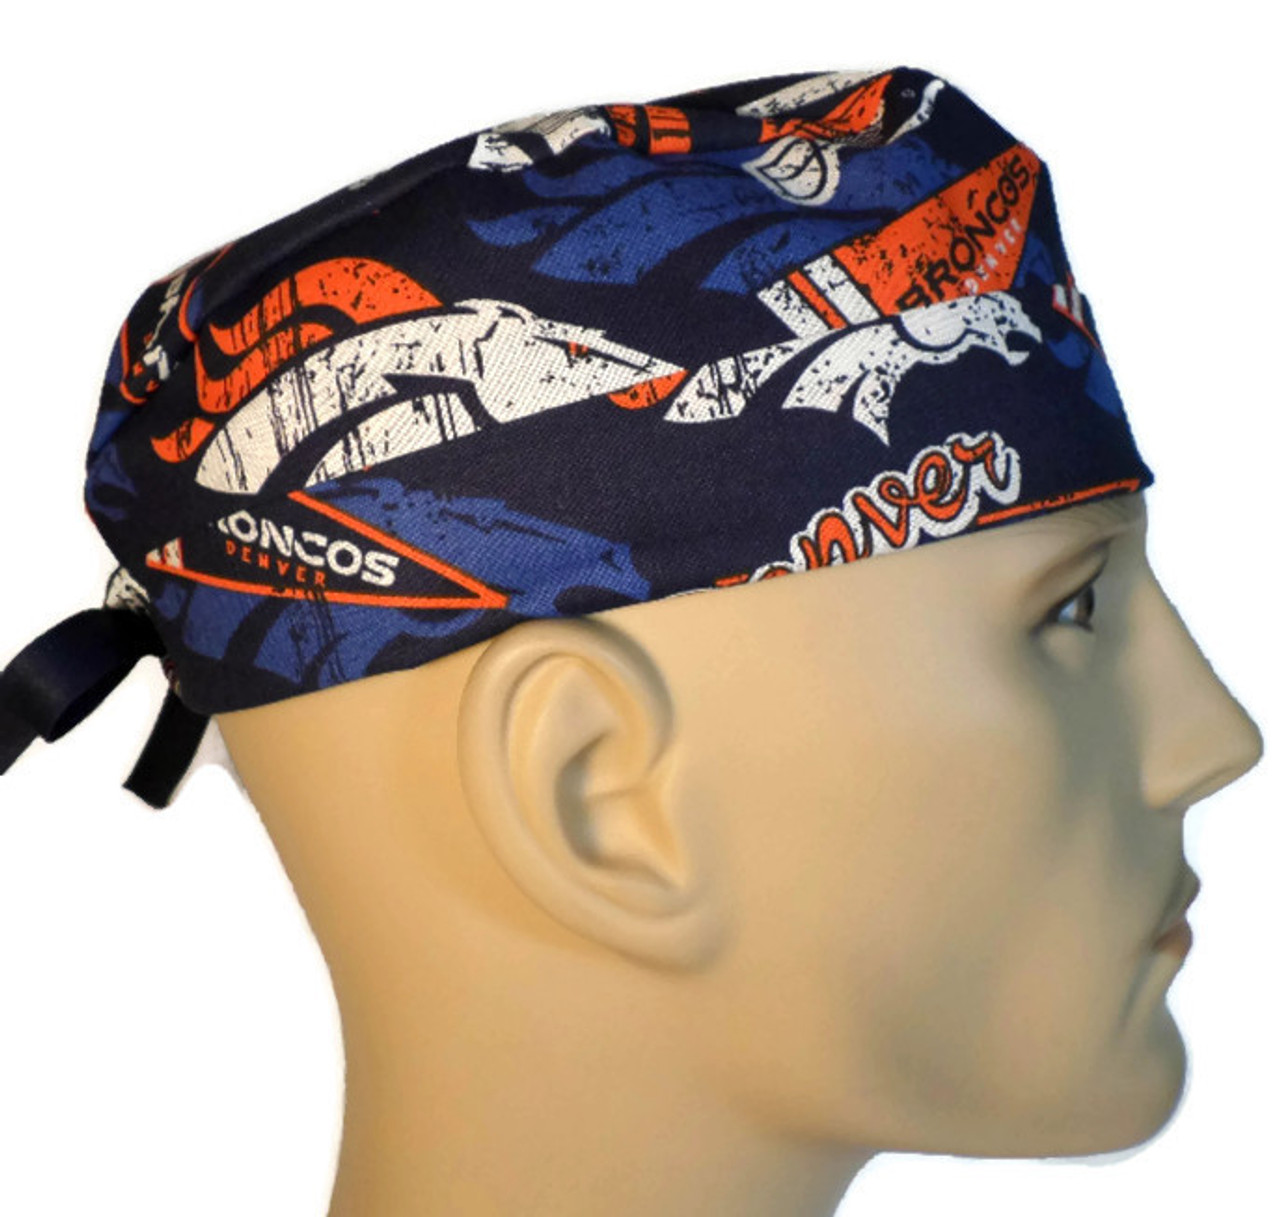 14537f8af Men's Semi-Lined Fold-Up Cuffed (shown) or No Cuff Surgical Scrub Hat  Handmade with Denver Broncos Retro fabric